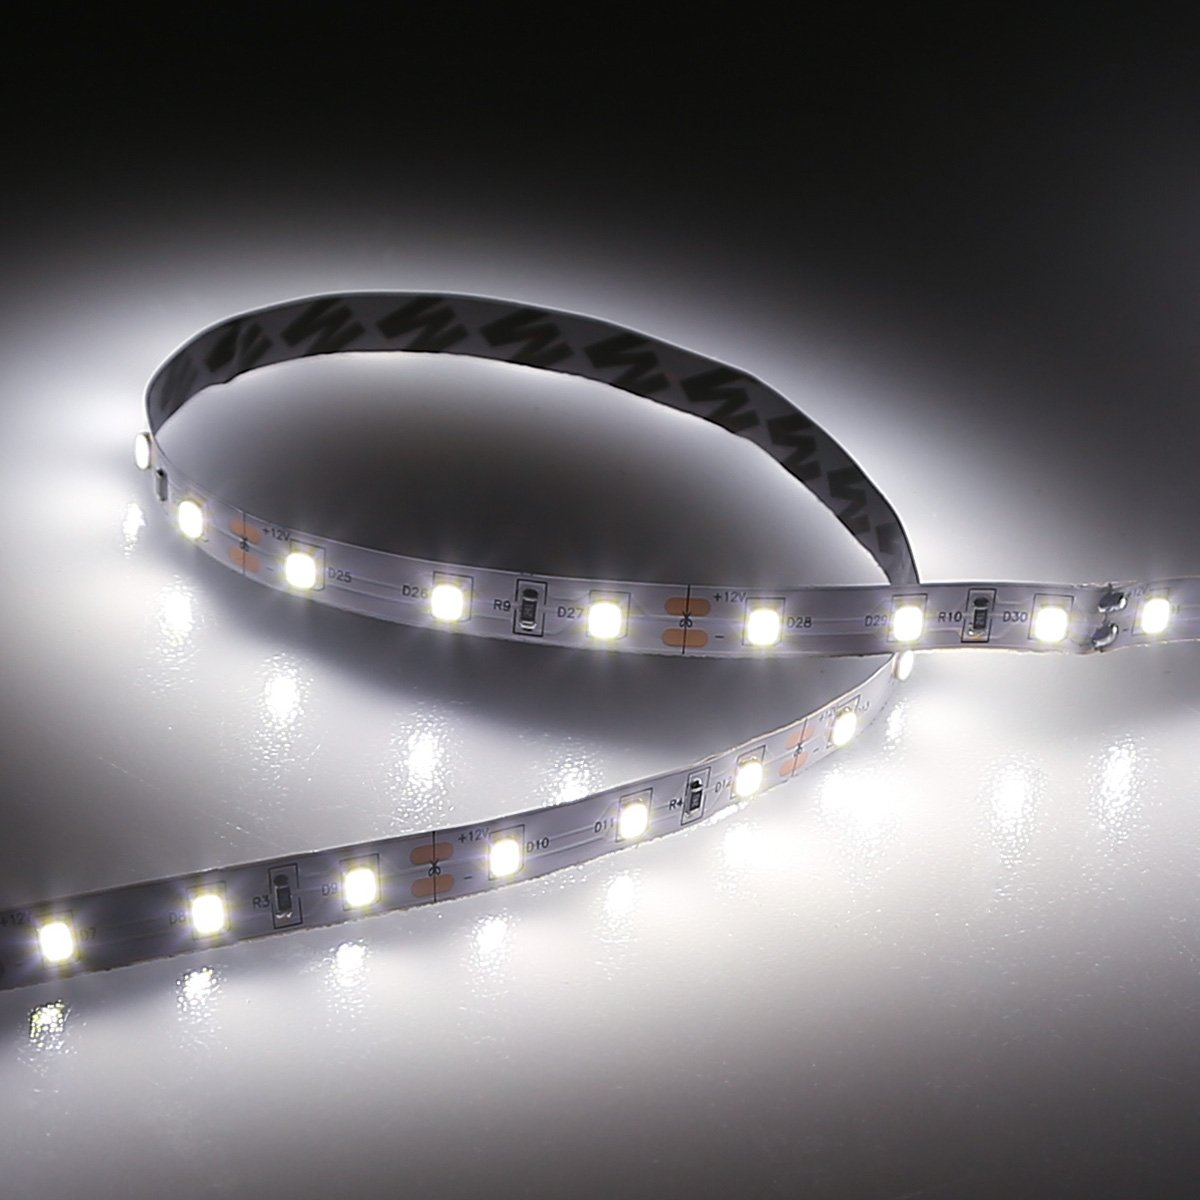 Amazon le 164ft led flexible light strip 300 units smd 2835 amazon le 164ft led flexible light strip 300 units smd 2835 leds 12v dc non waterproof light strips led ribbon diy christmas holiday home kitchen aloadofball